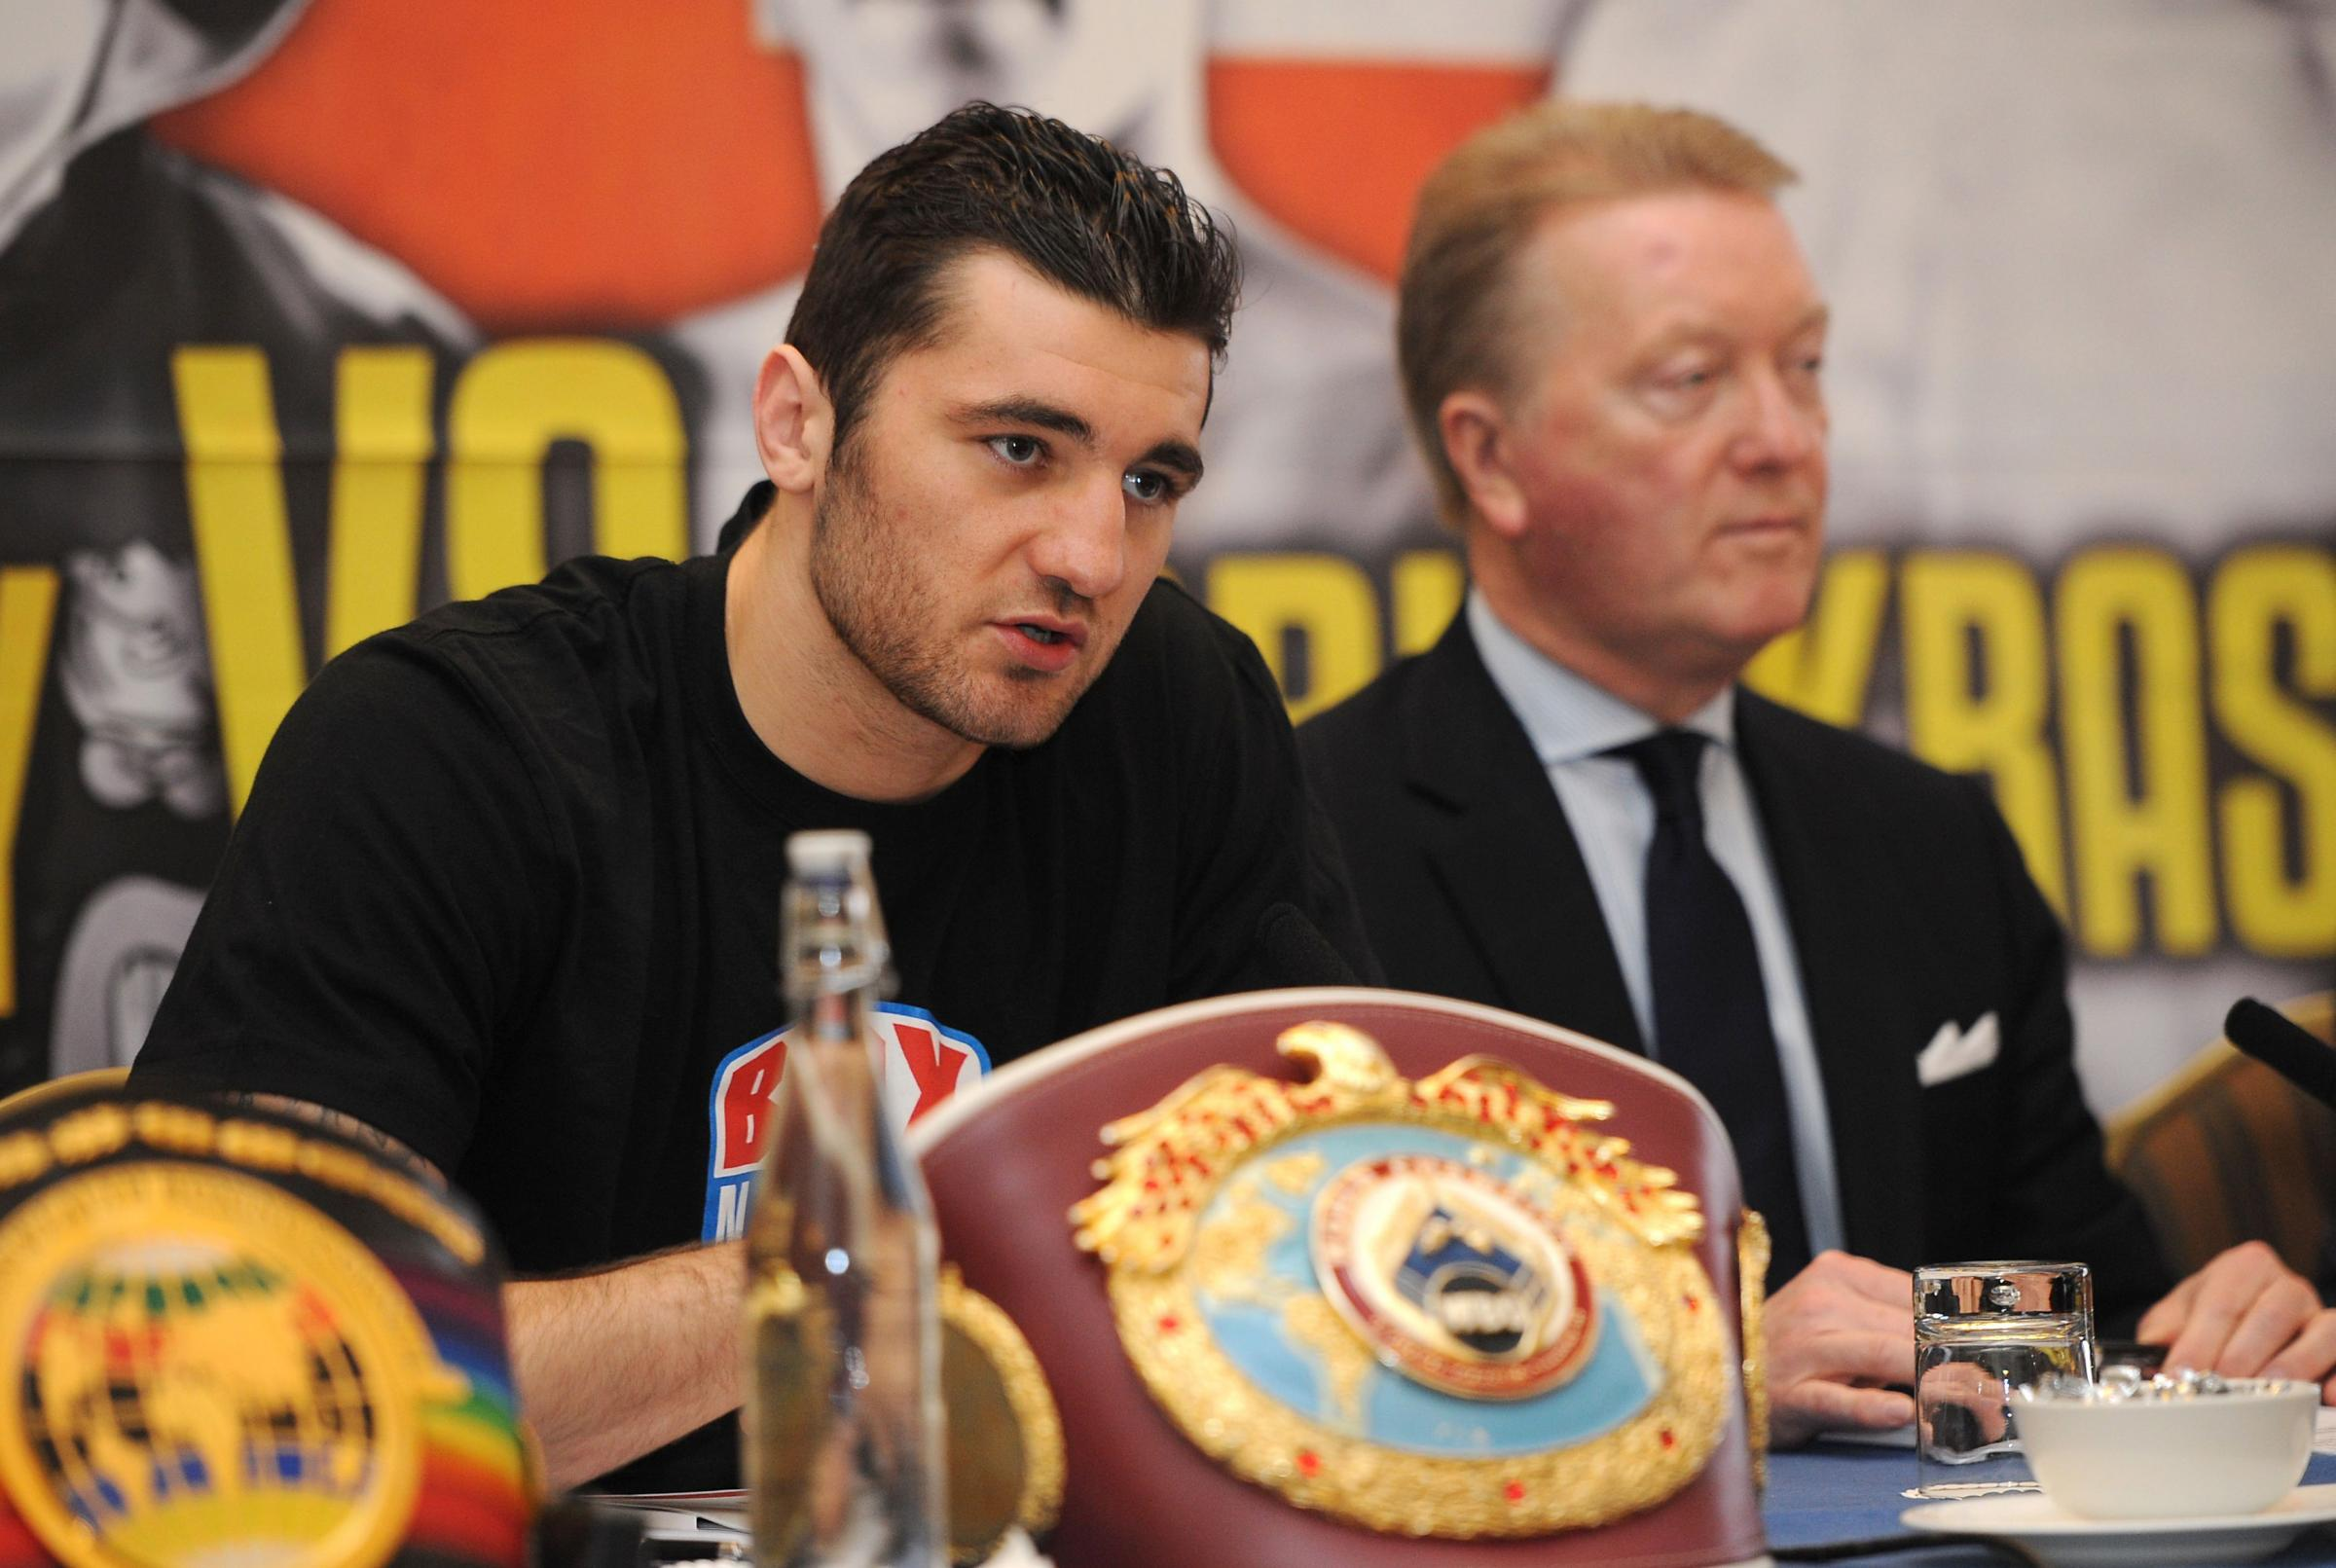 BACKING: Cefn Fforest boxing star Nathan Cleverly, left, with promoter Frank Warren